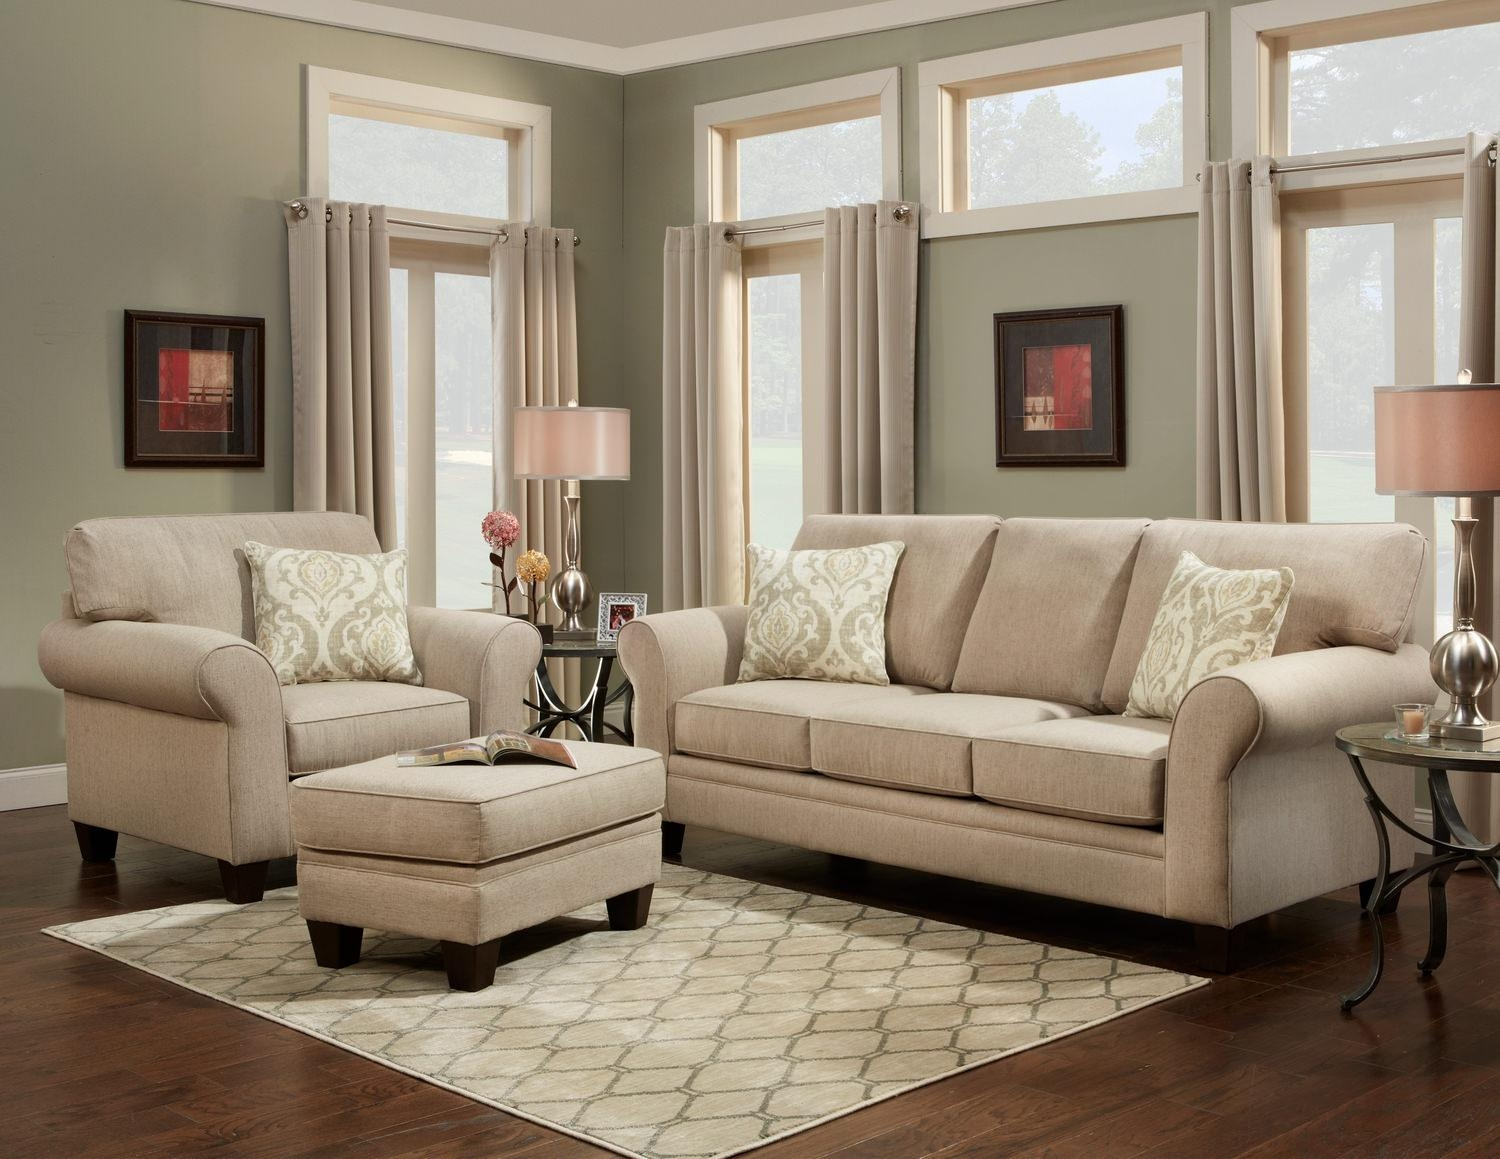 Tangle 3 Piece Room Package (Sofa, Chair And Ottoman) | Hom With Regard To Sofa Chair And Ottoman (Image 18 of 20)